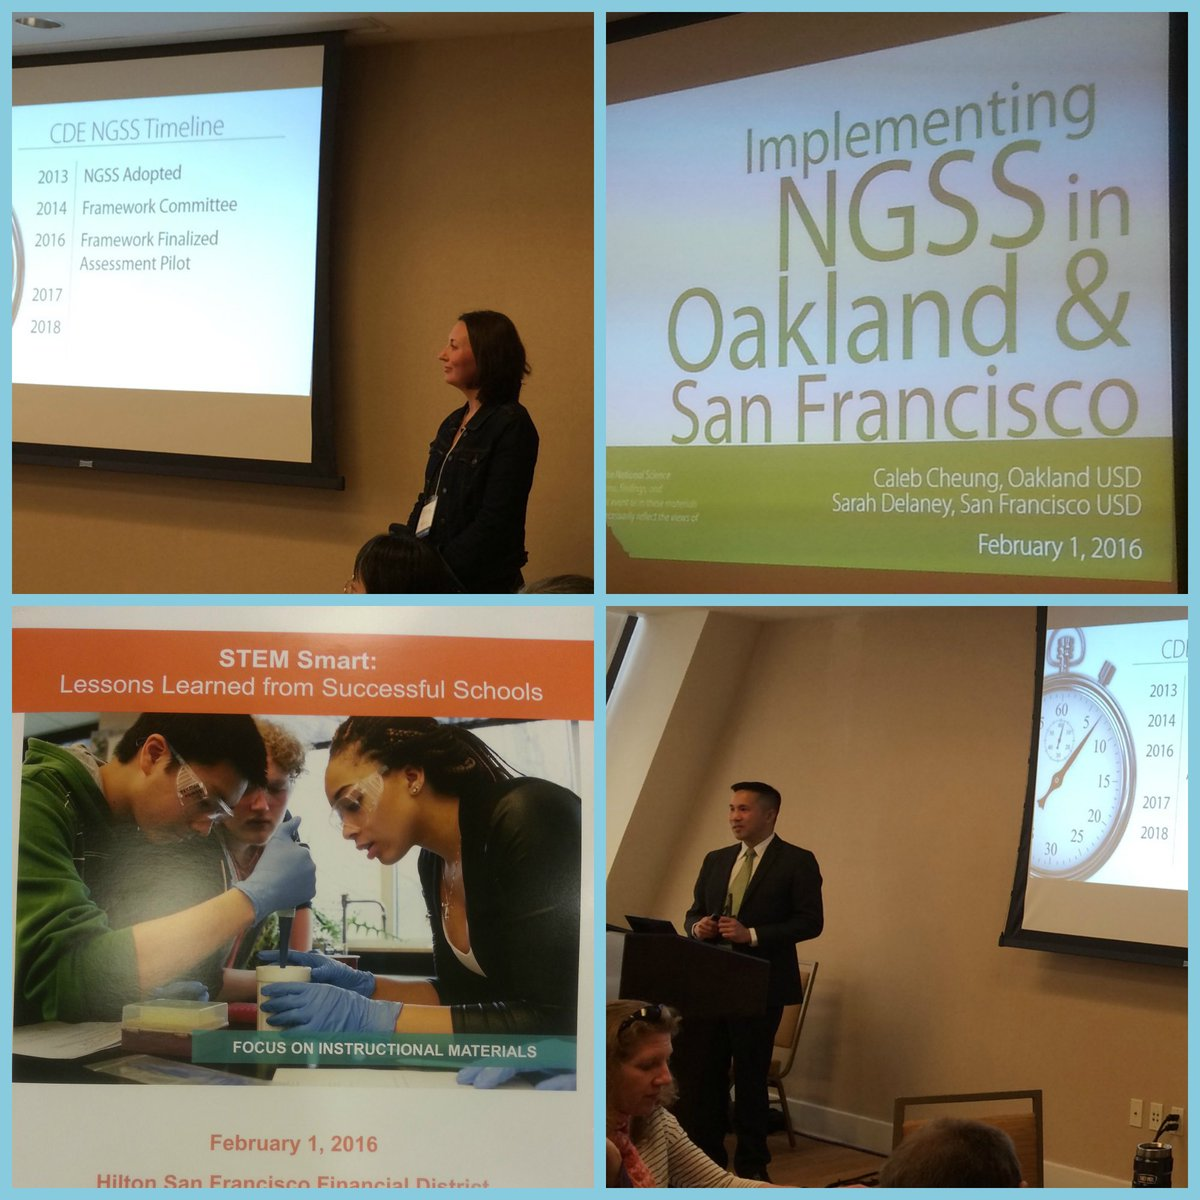 #SFUSD & @OUSDNews Science Leaders Sarah & Caleb share insights at #NSFSTEM meeting. #NGSS https://t.co/eaOObMiQ2b